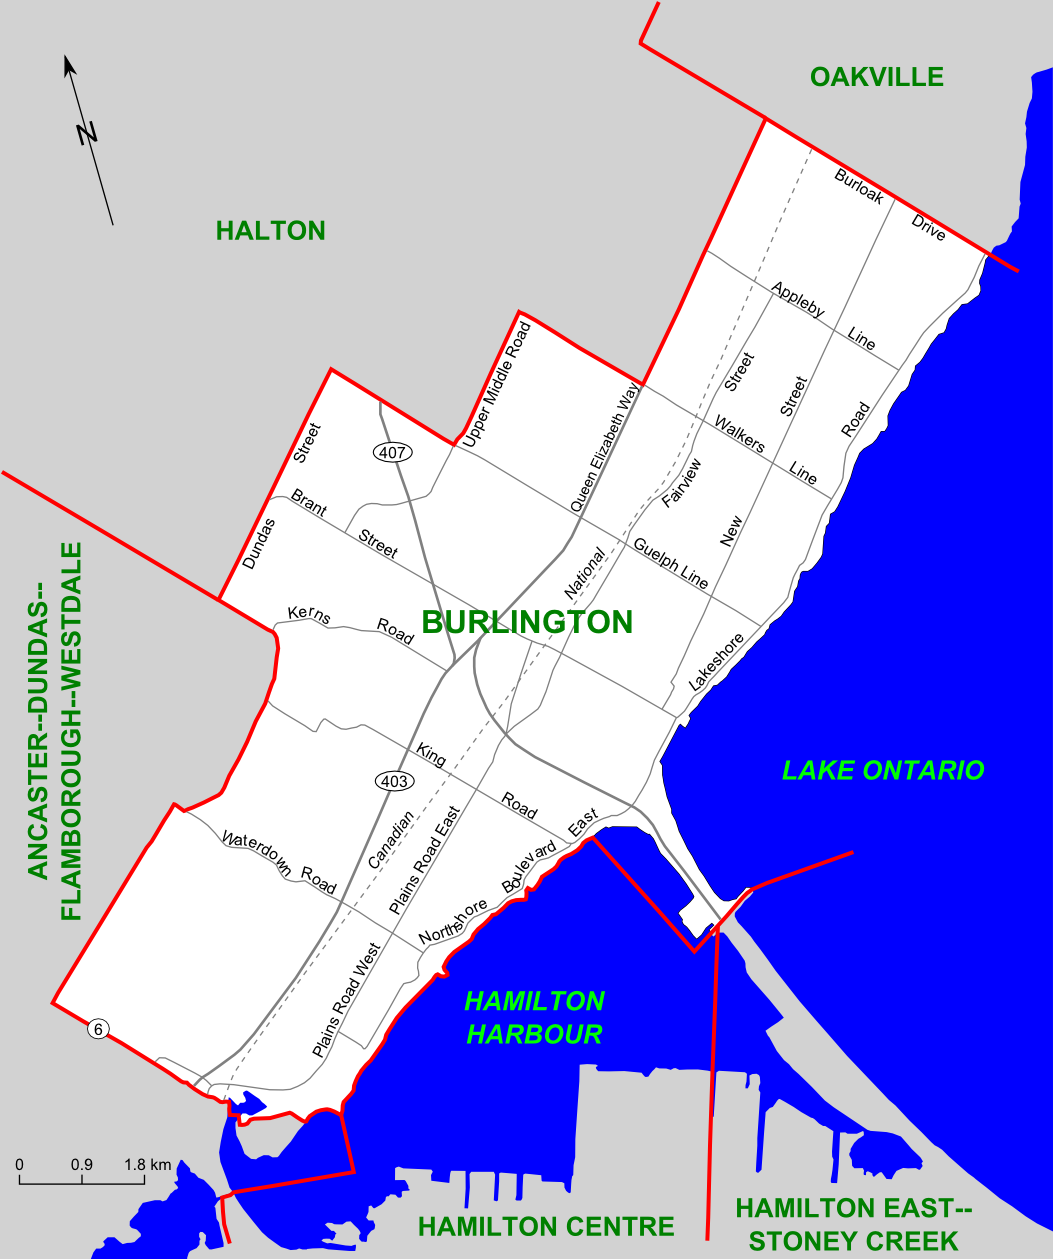 FileBurlington Riding Mappng Wikimedia Commons - Burlington map